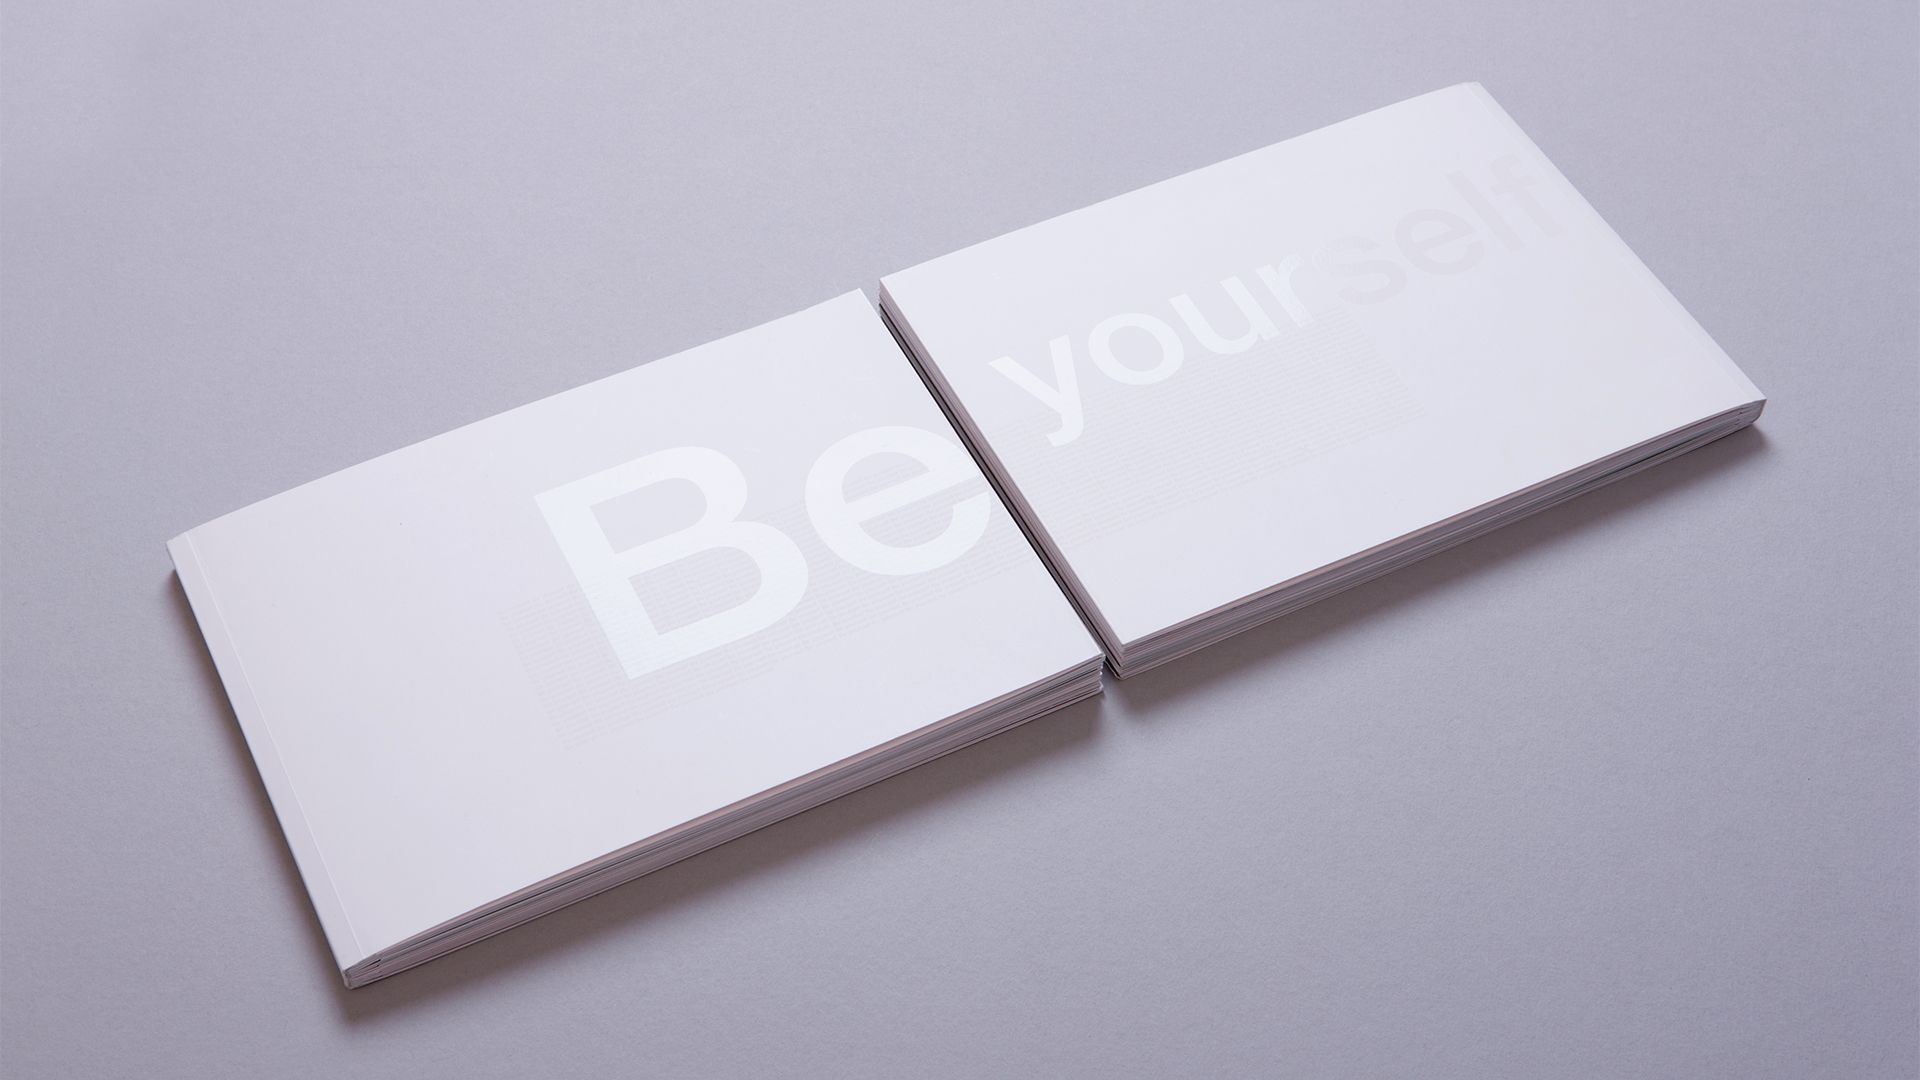 Simplyhealth Be Yourself Book Cover showing Spot Gloss Print